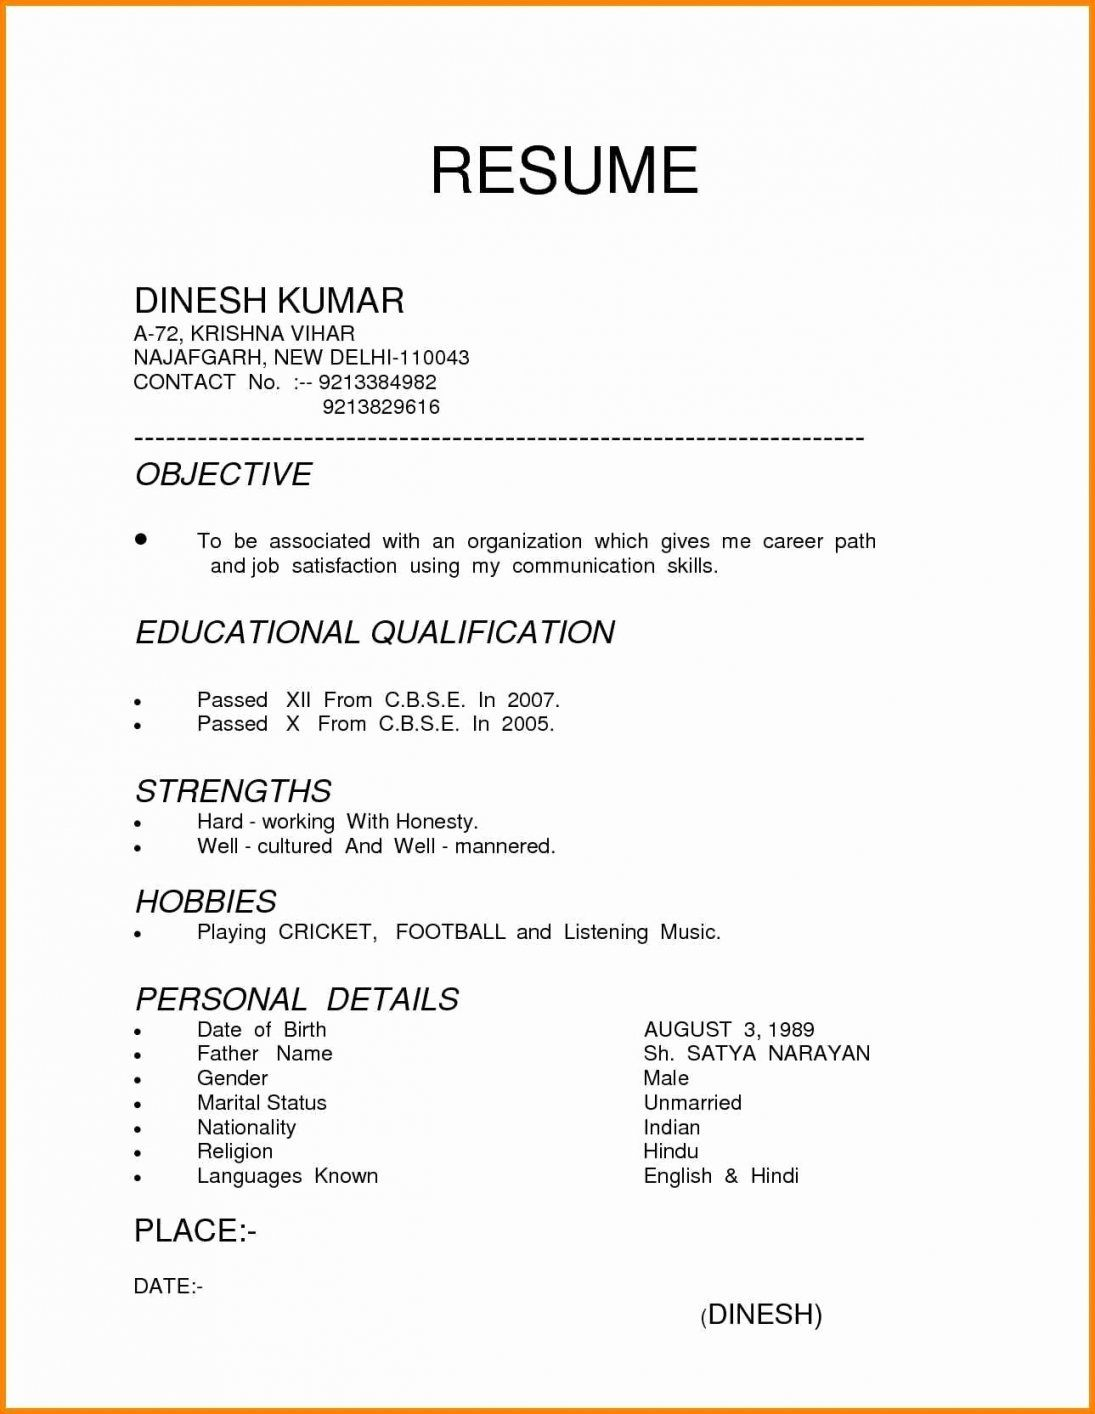 different resume formats format examples for freshers types of pdf ideal entry level Resume Types Of Resume Pdf